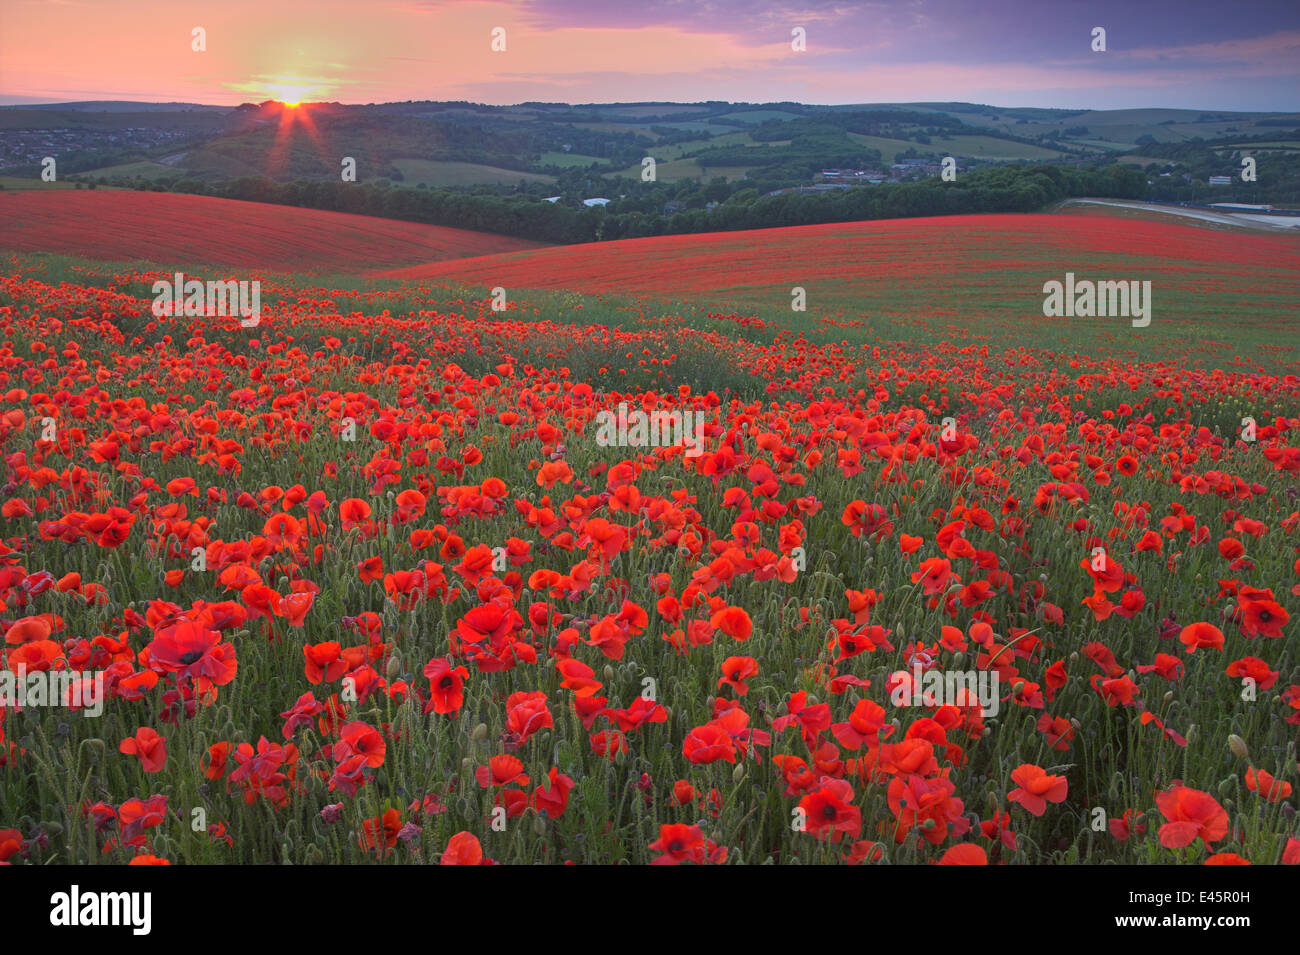 Sunset over fields of Common poppies (Papaver rhoeas) South Downs, West Sussex, England. June 2009 Stock Photo